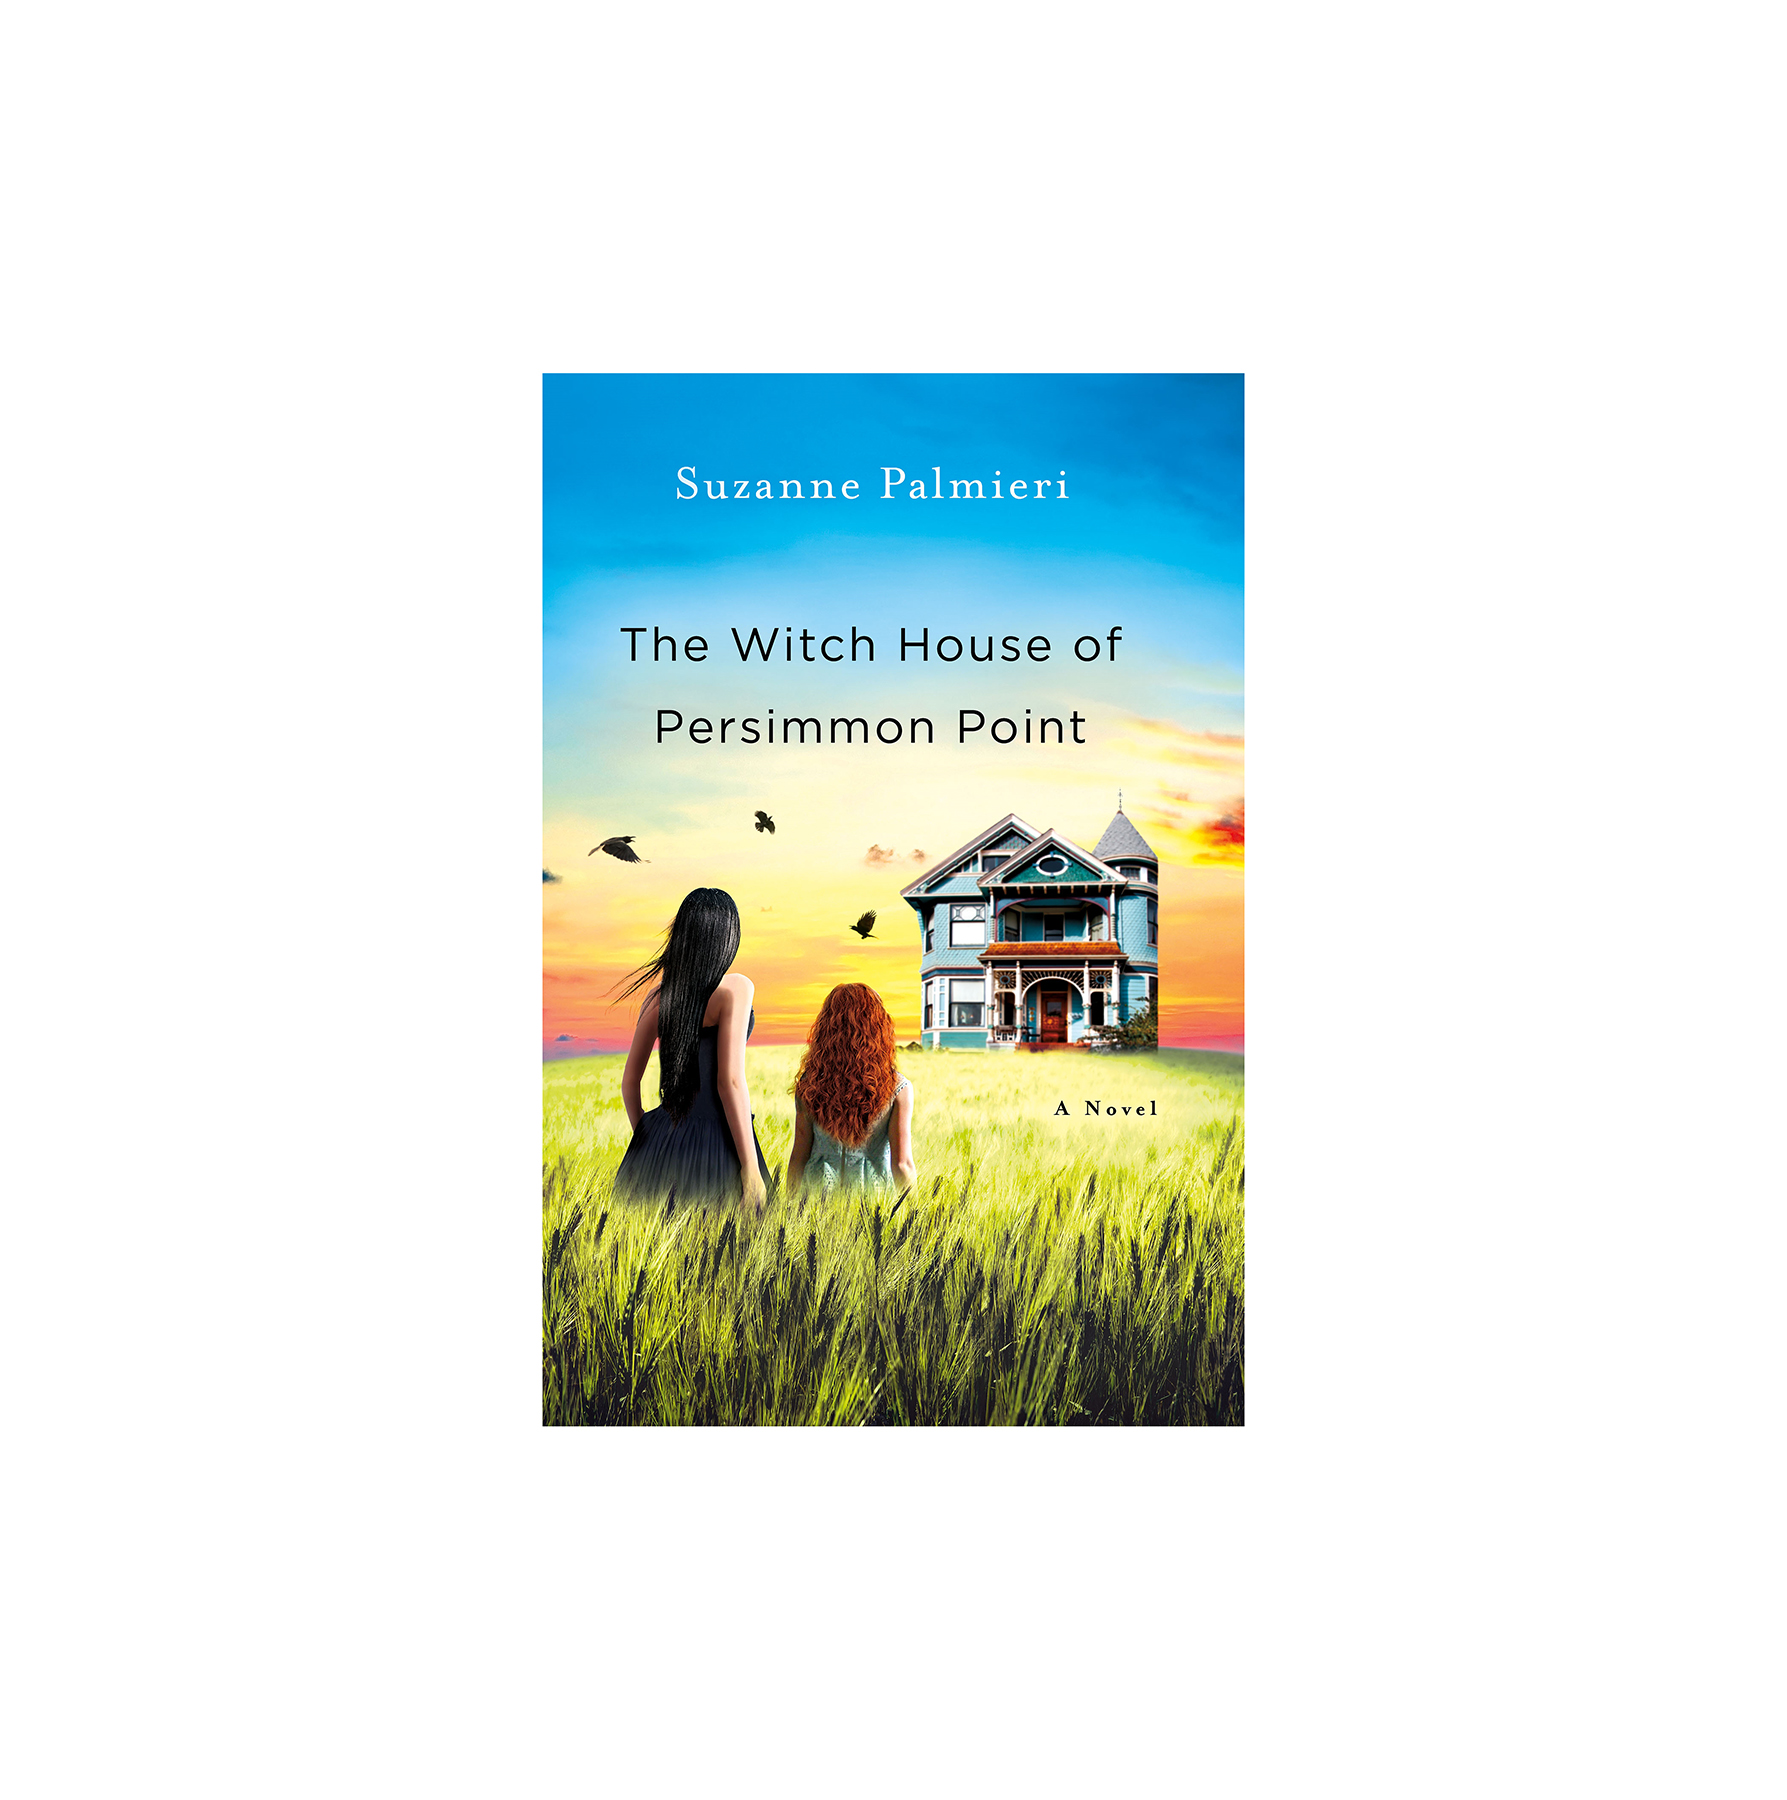 The Witch House of Persimmon Point, by Suzanne Palmieri